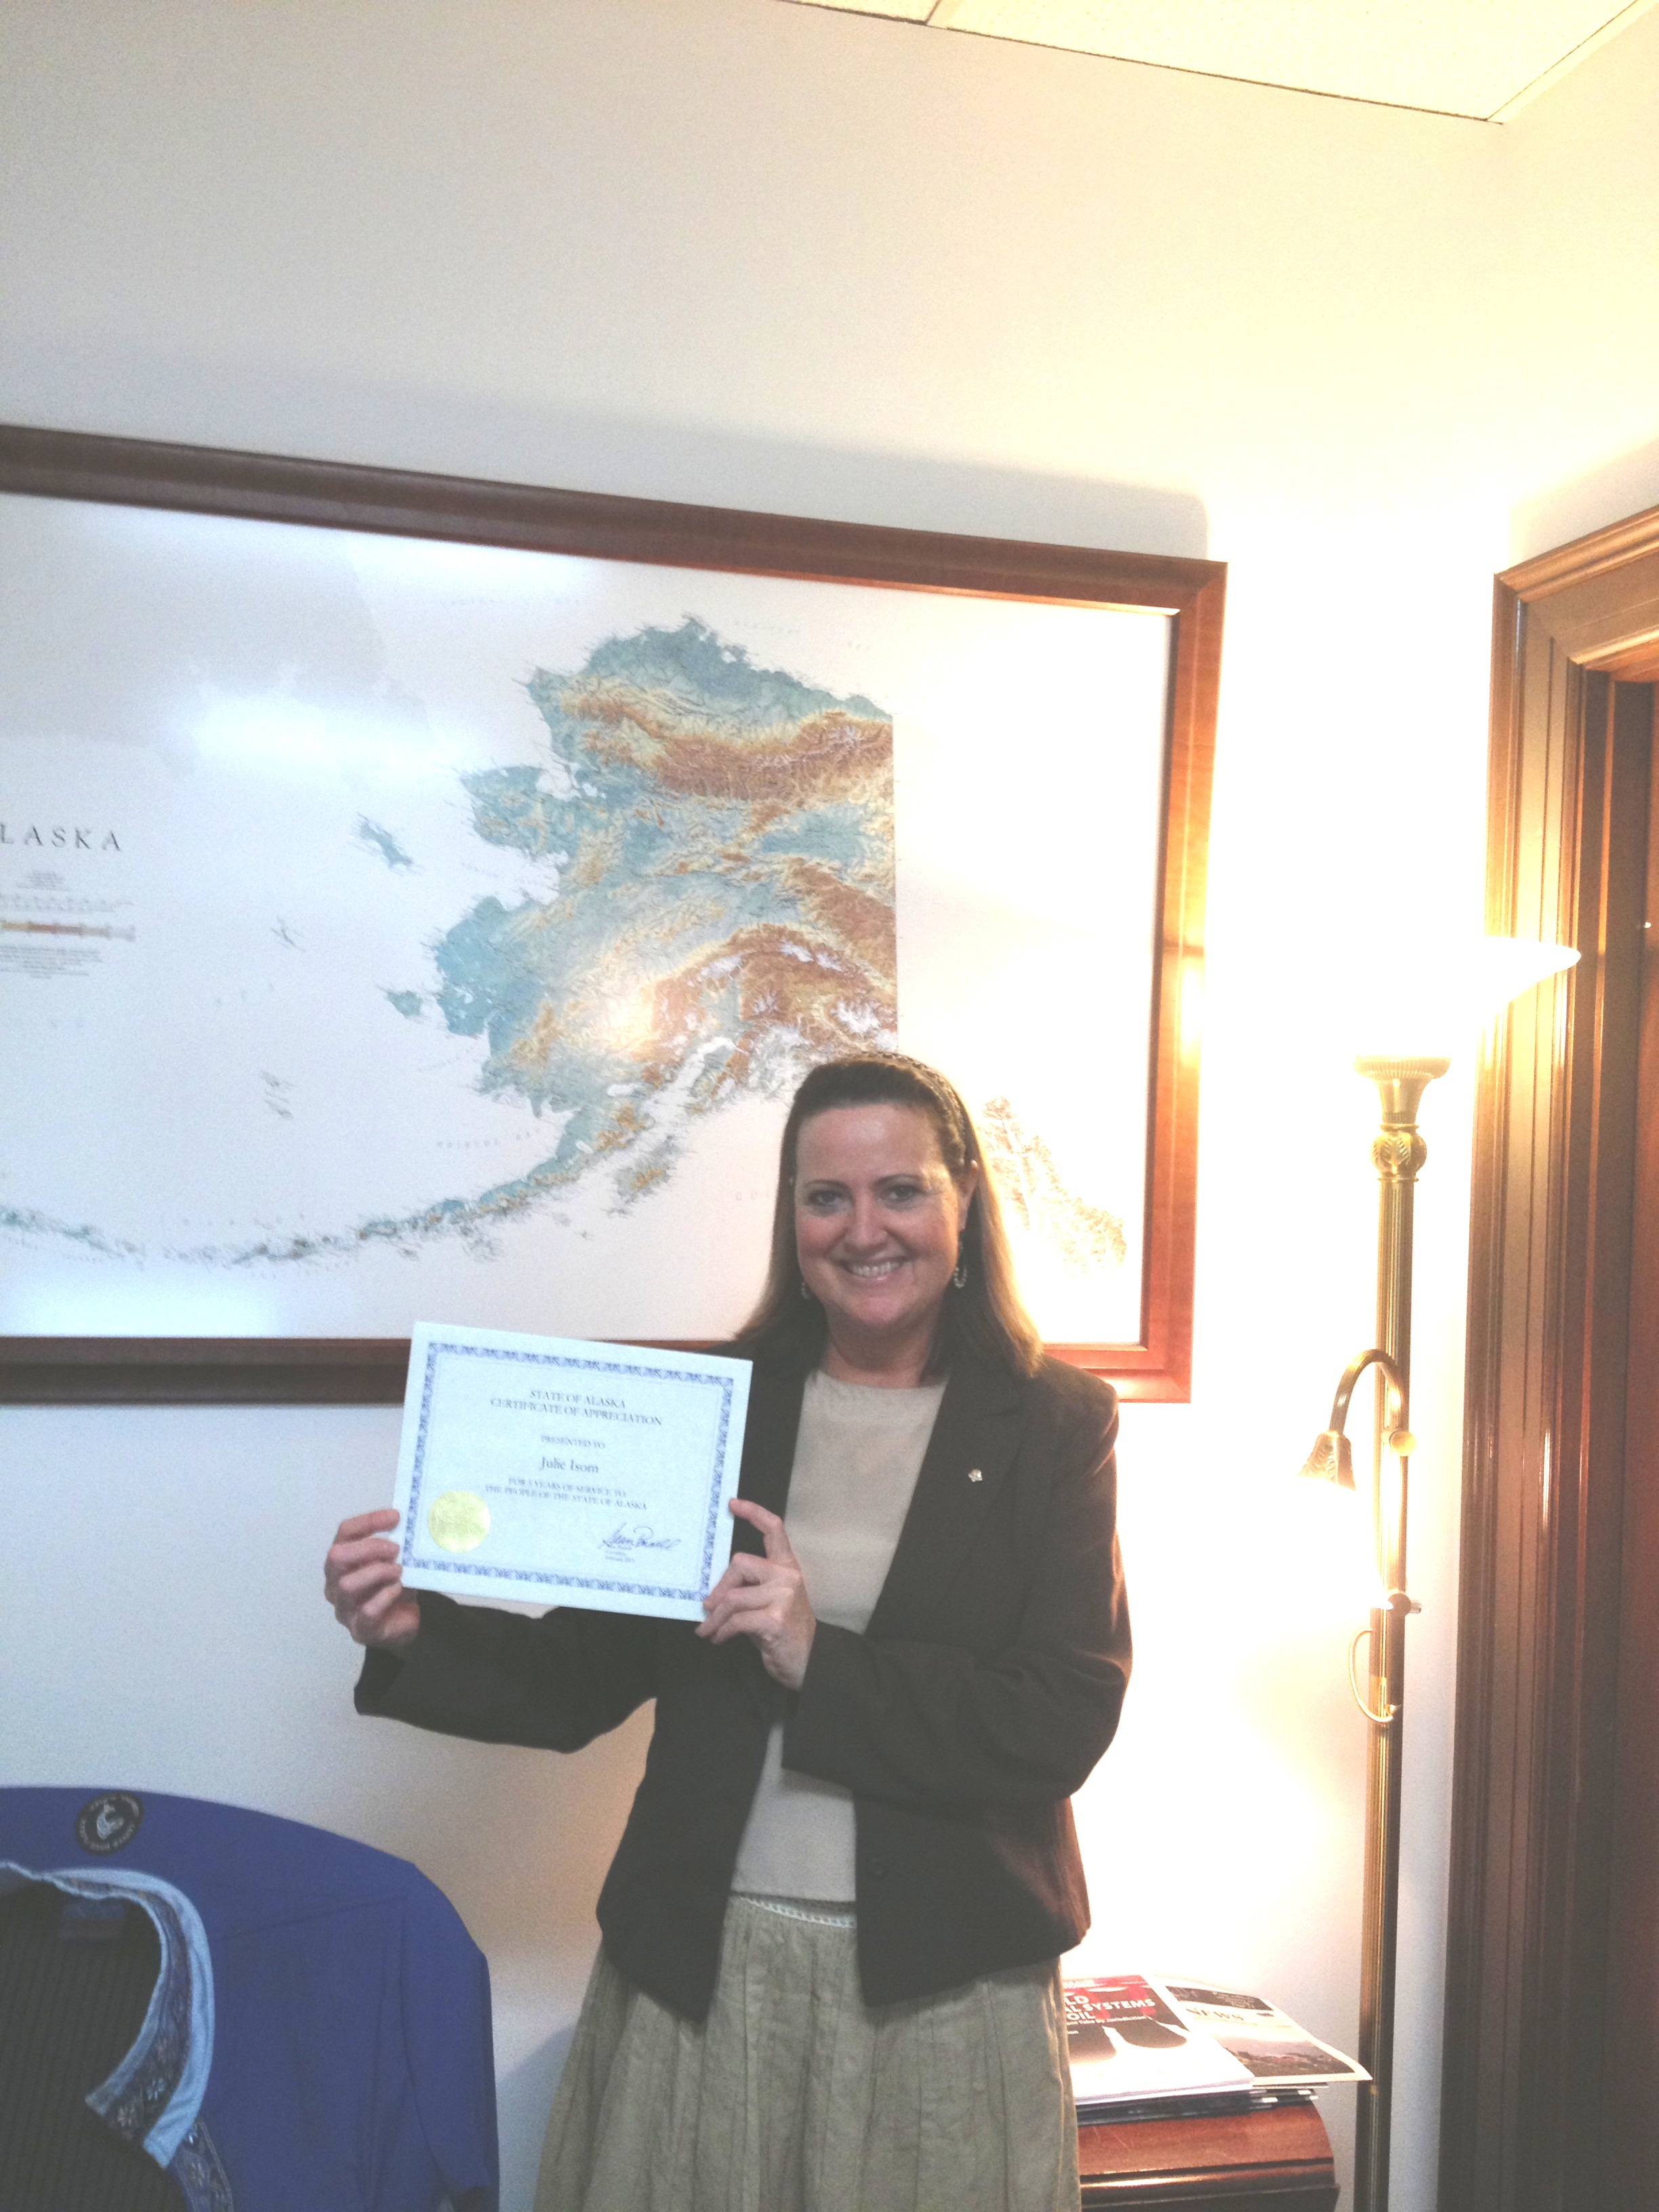 Julie Isom with her certificate honoring 5 years of state service